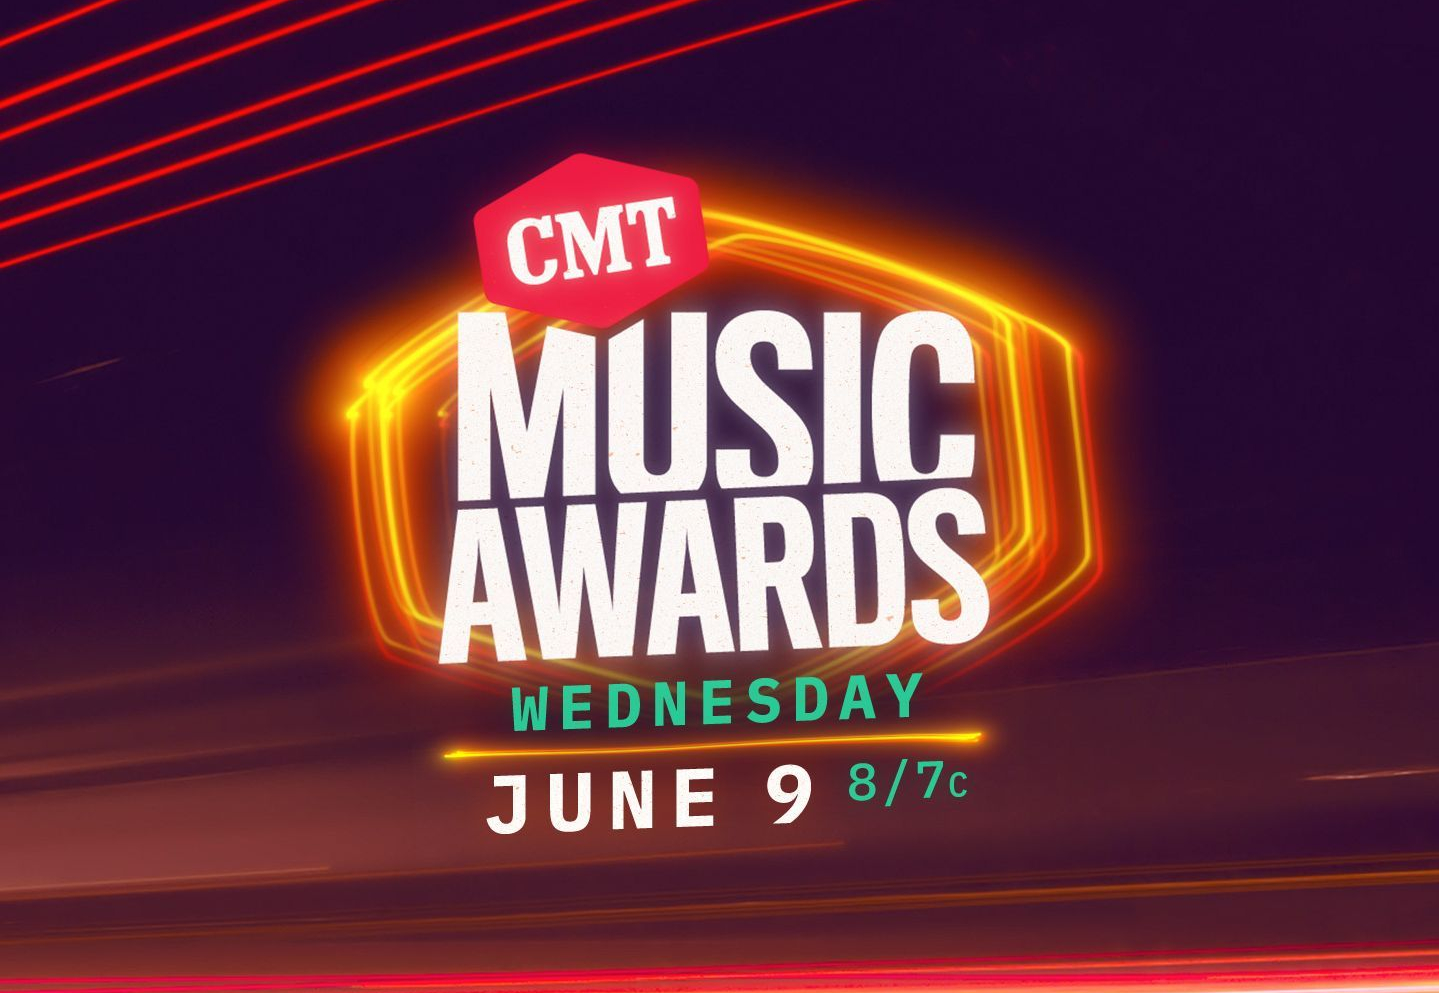 CMT Music Awards: See the List of Winners